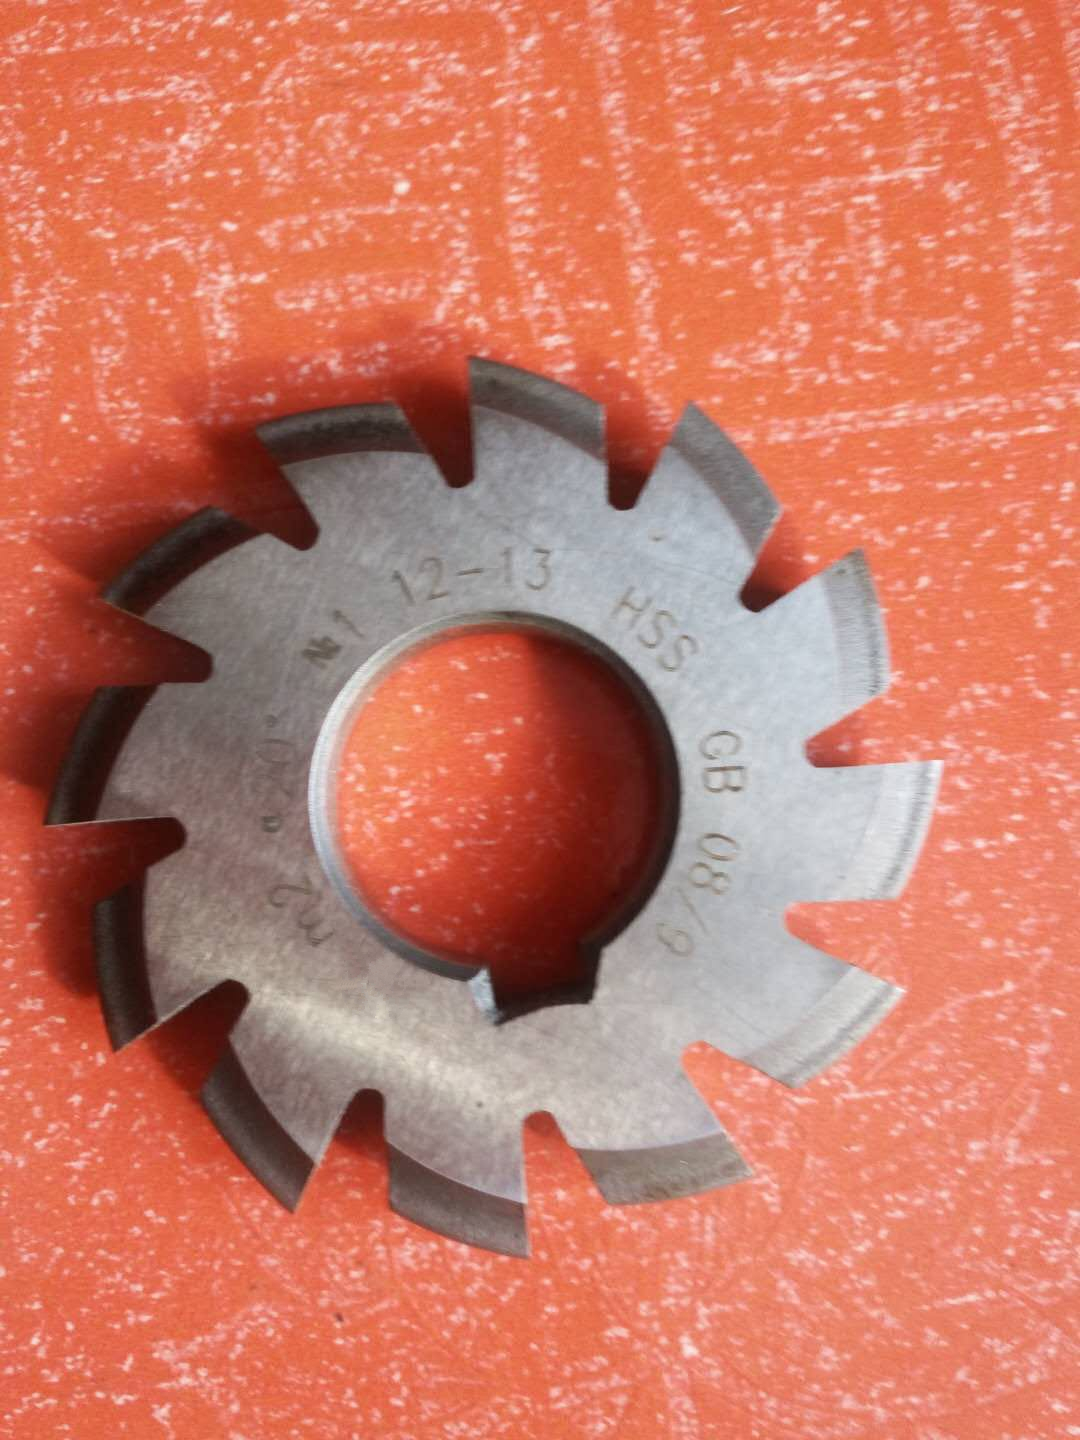 Set 8Pcs Module 2 PA20 Bore22 1#2#3#4#5#6#7#8# Involute Gear Cutters M2 diameter 22mm m2 20 degree 2 involute module gear cutters hss high speed steel new machine tools accessories